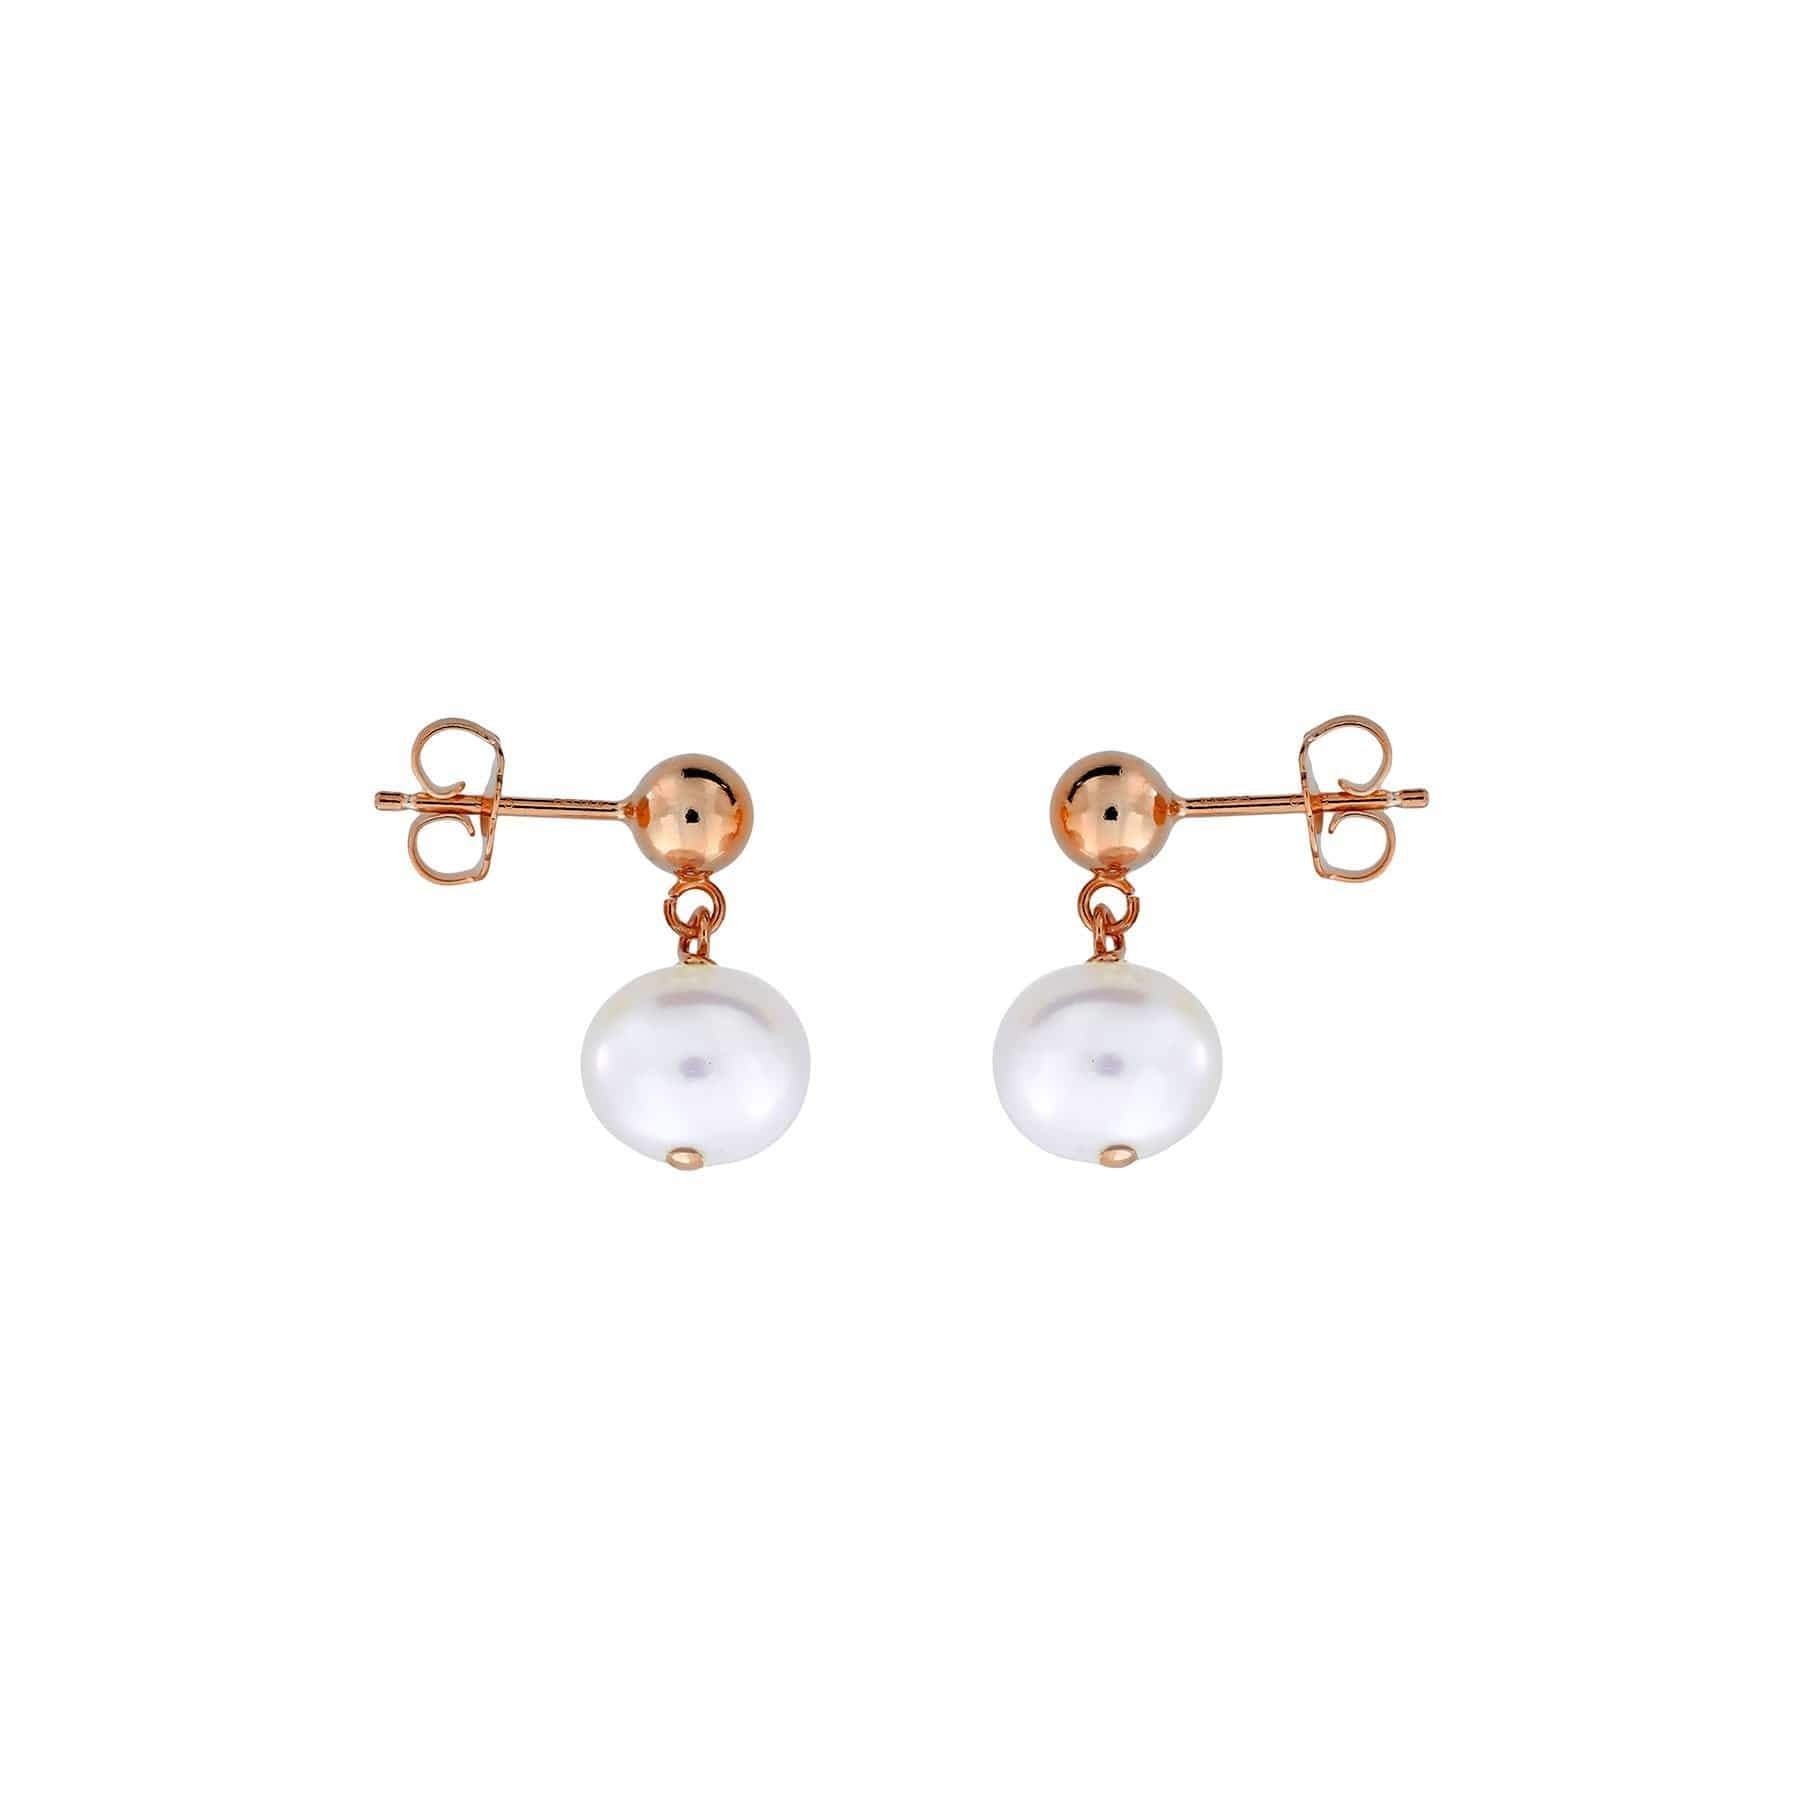 Round Pearl Drop Earrings - 8mm